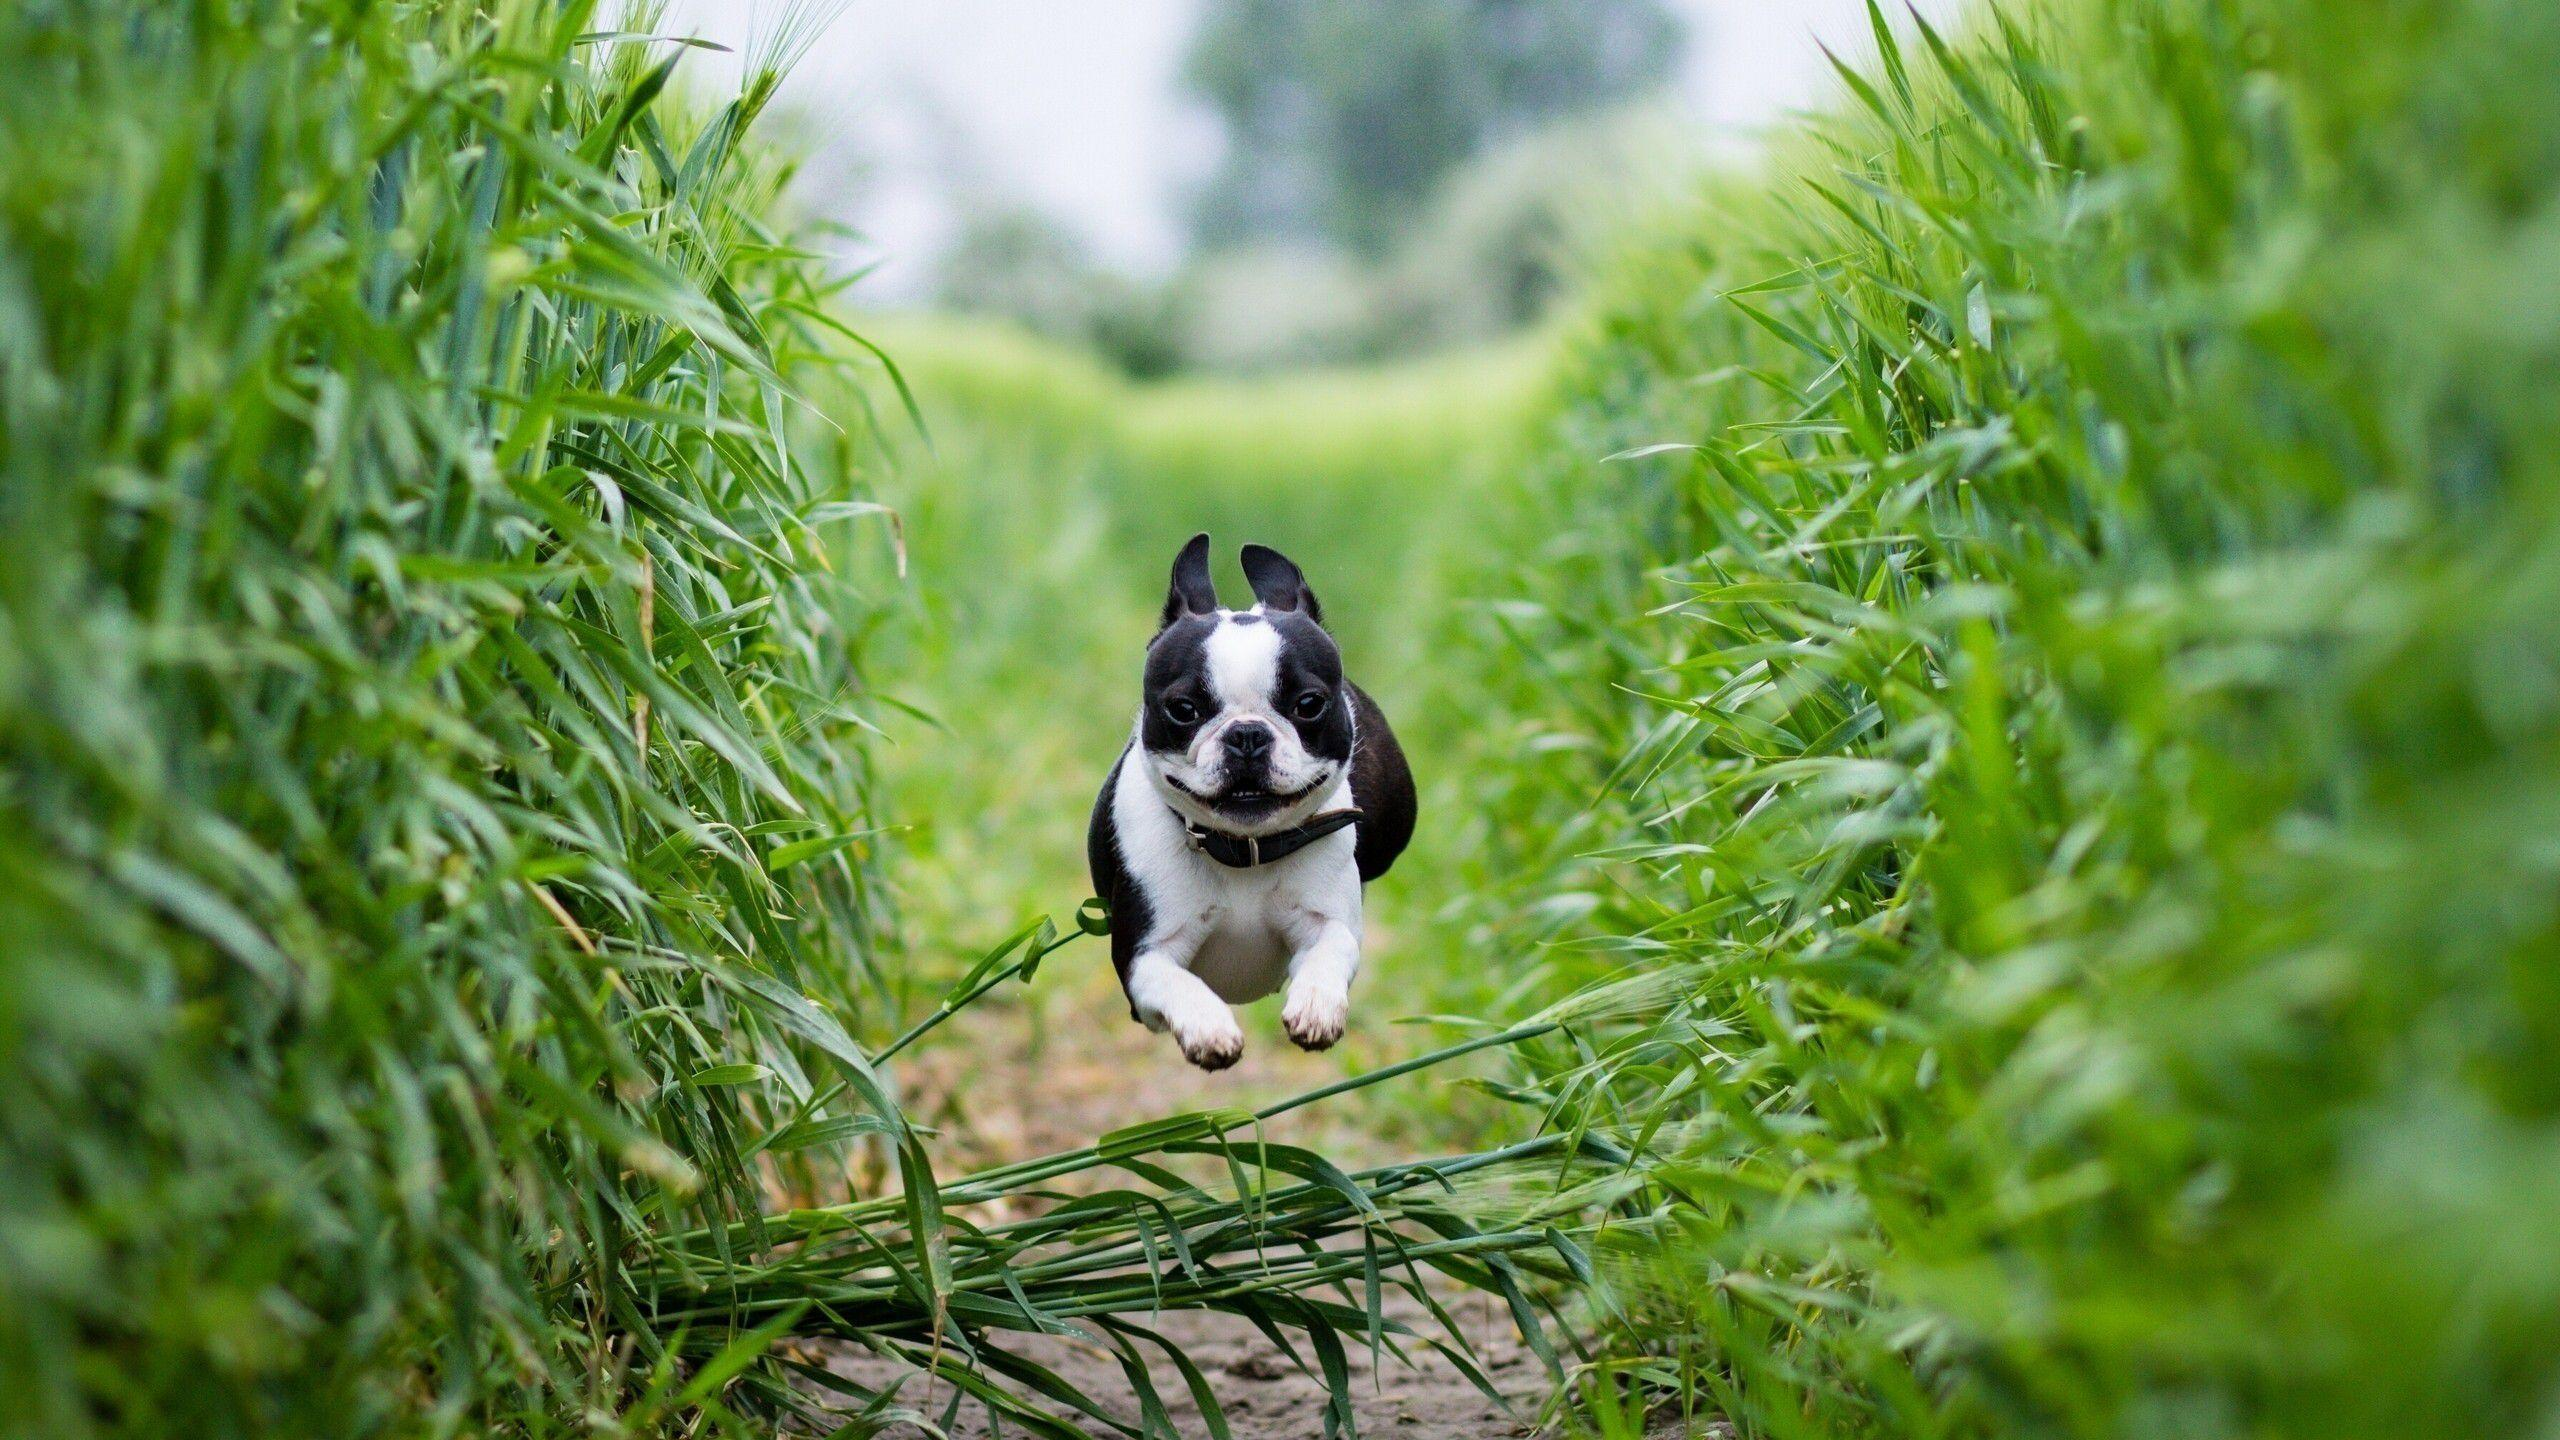 1080p Boston Terrier Dog Wallpaper Backgrounds